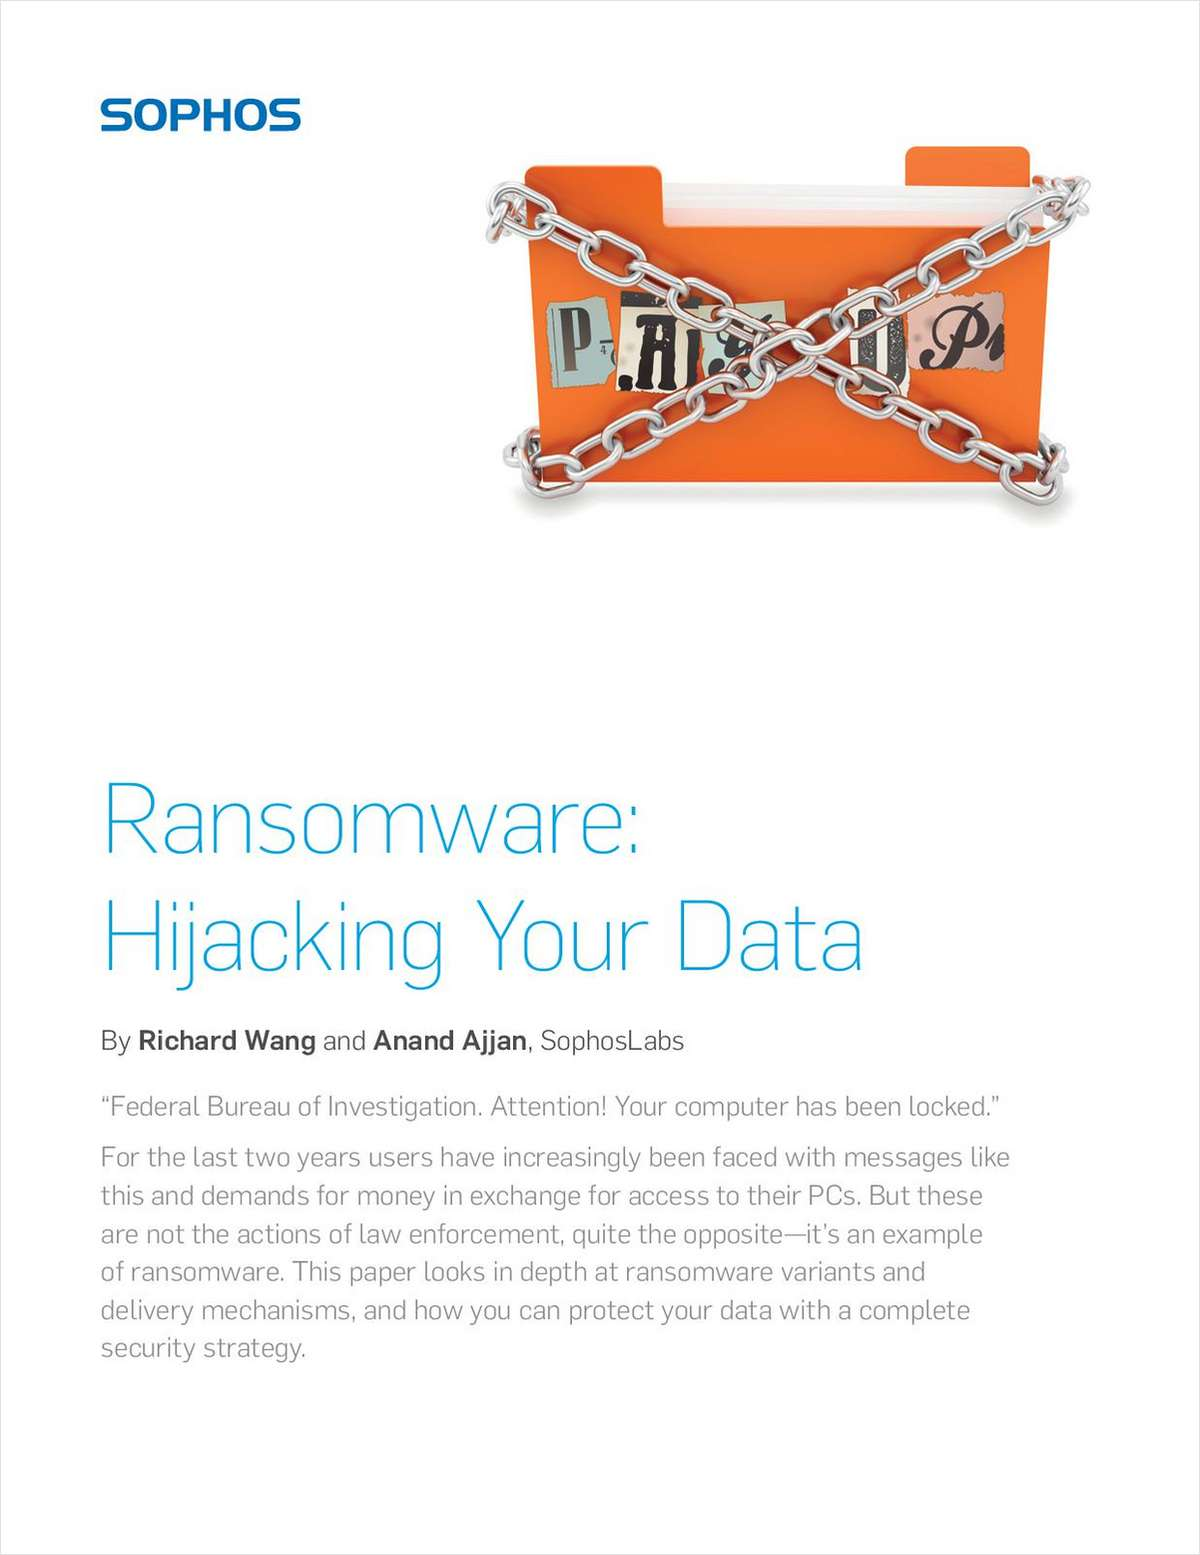 Ransomware: Hijacking Your Data